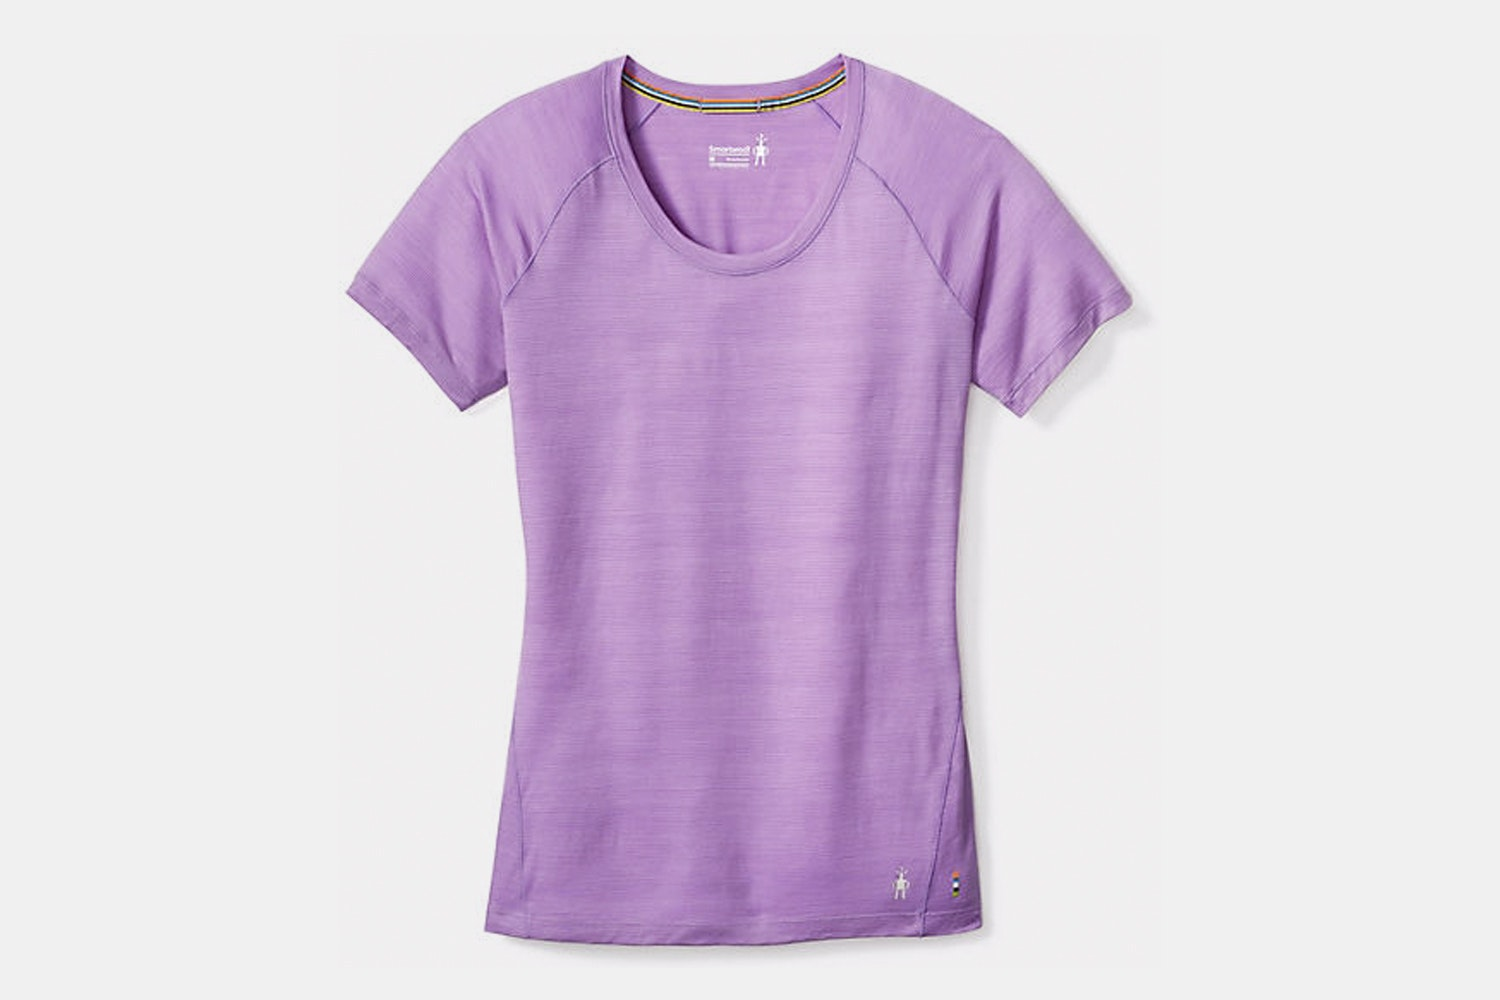 Women's – Patterned Lilac